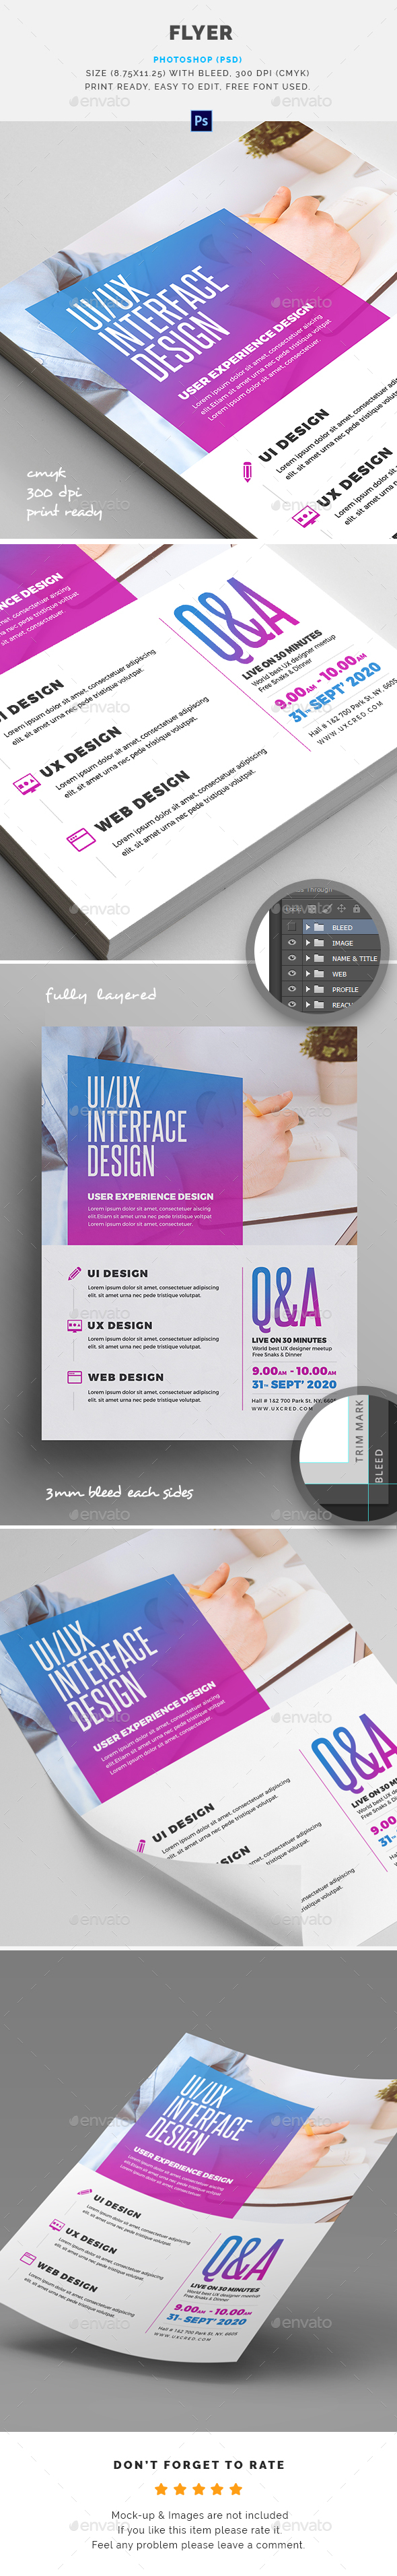 GraphicRiver Flyer 20988504